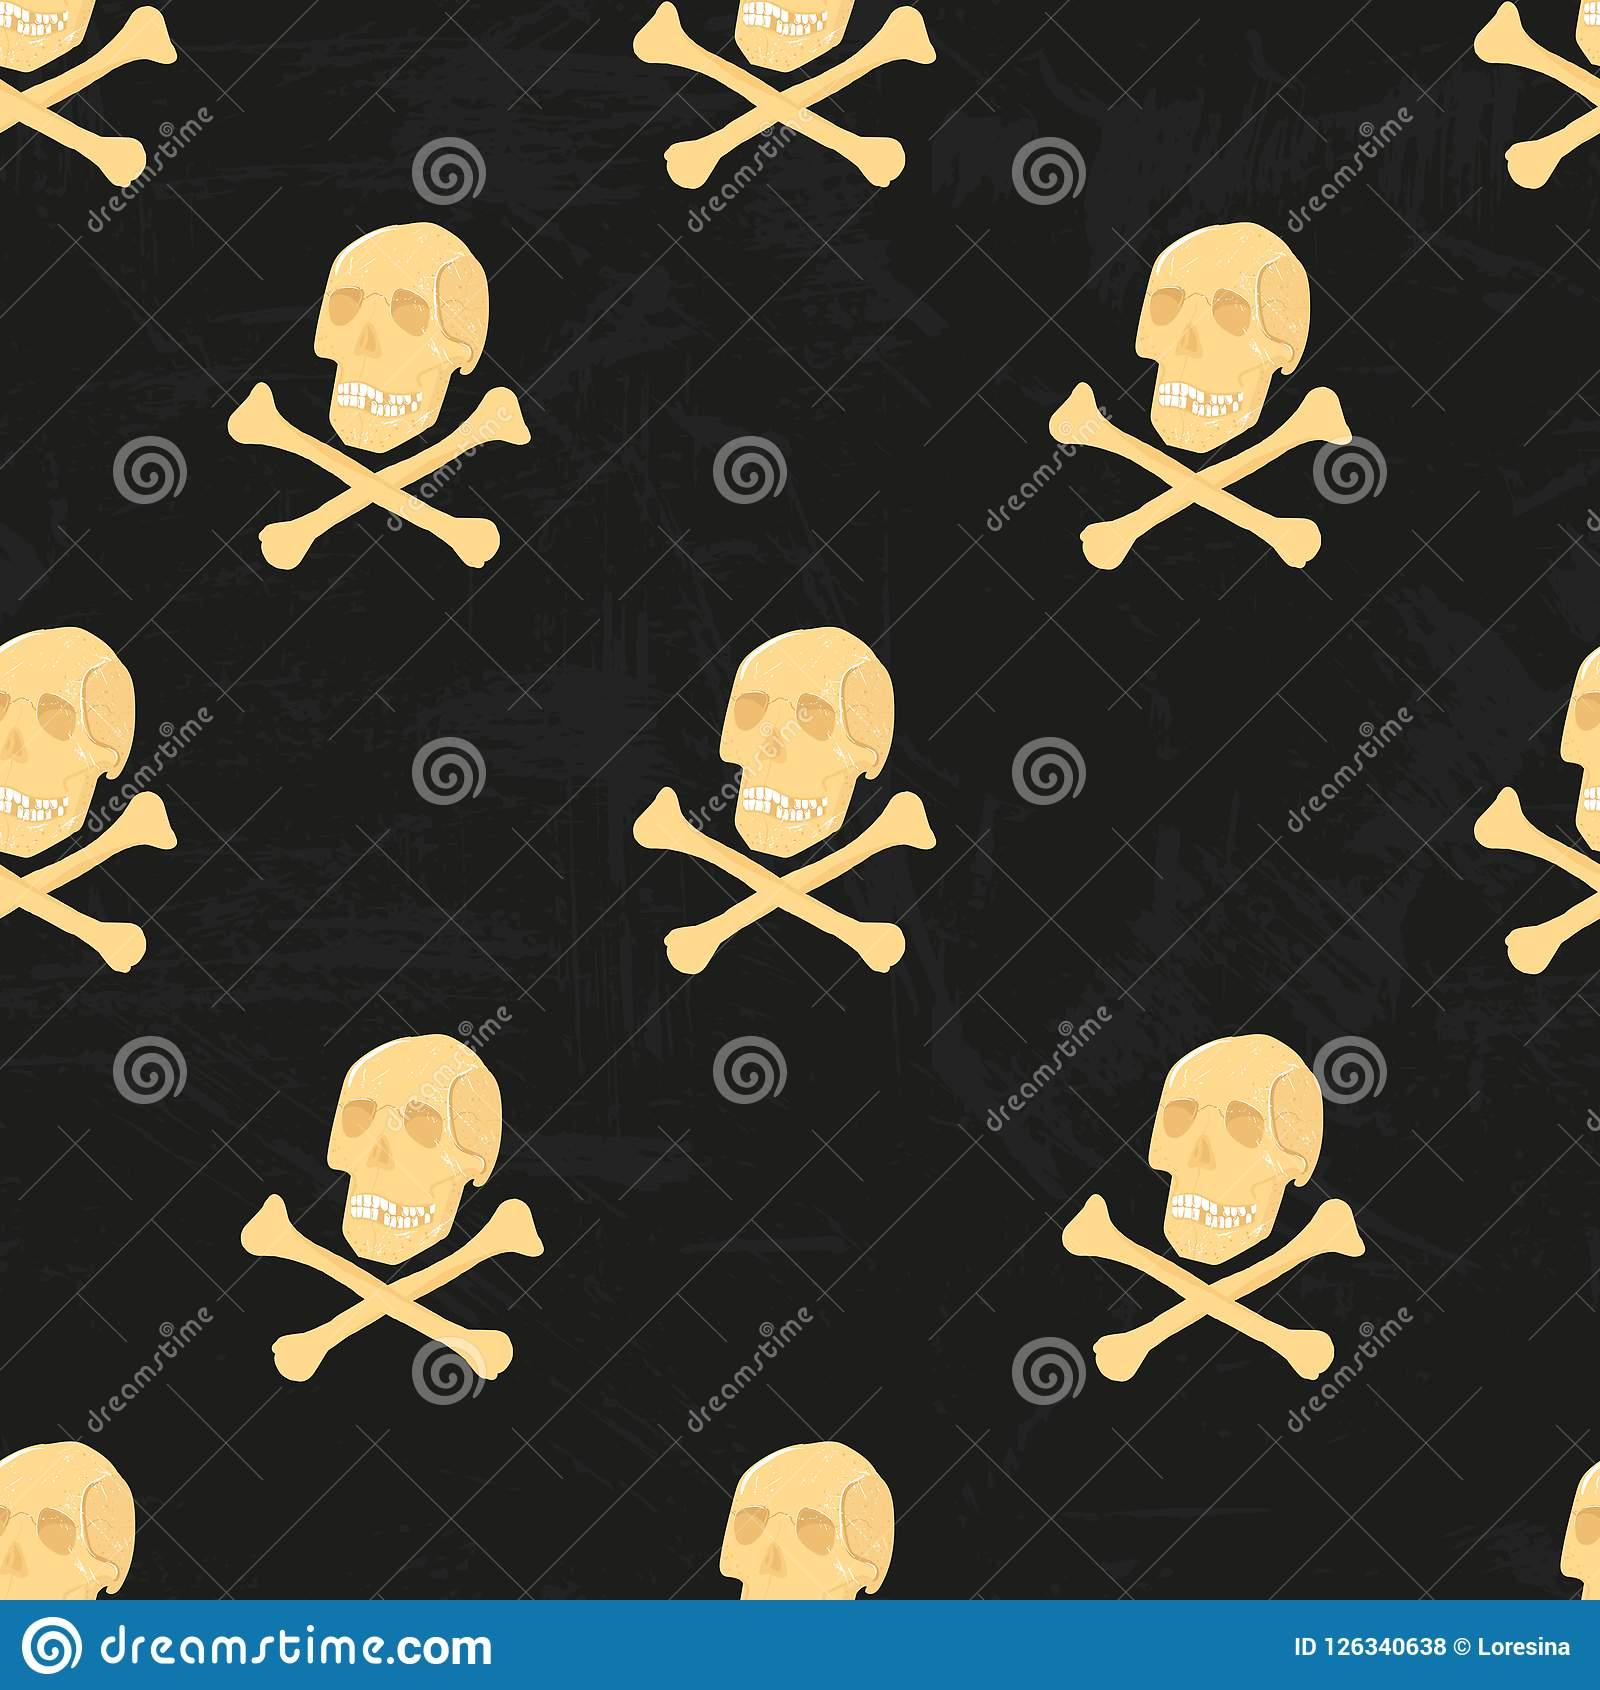 Vector Human Skeleton Seamless Pattern With Skulls And Crossbones